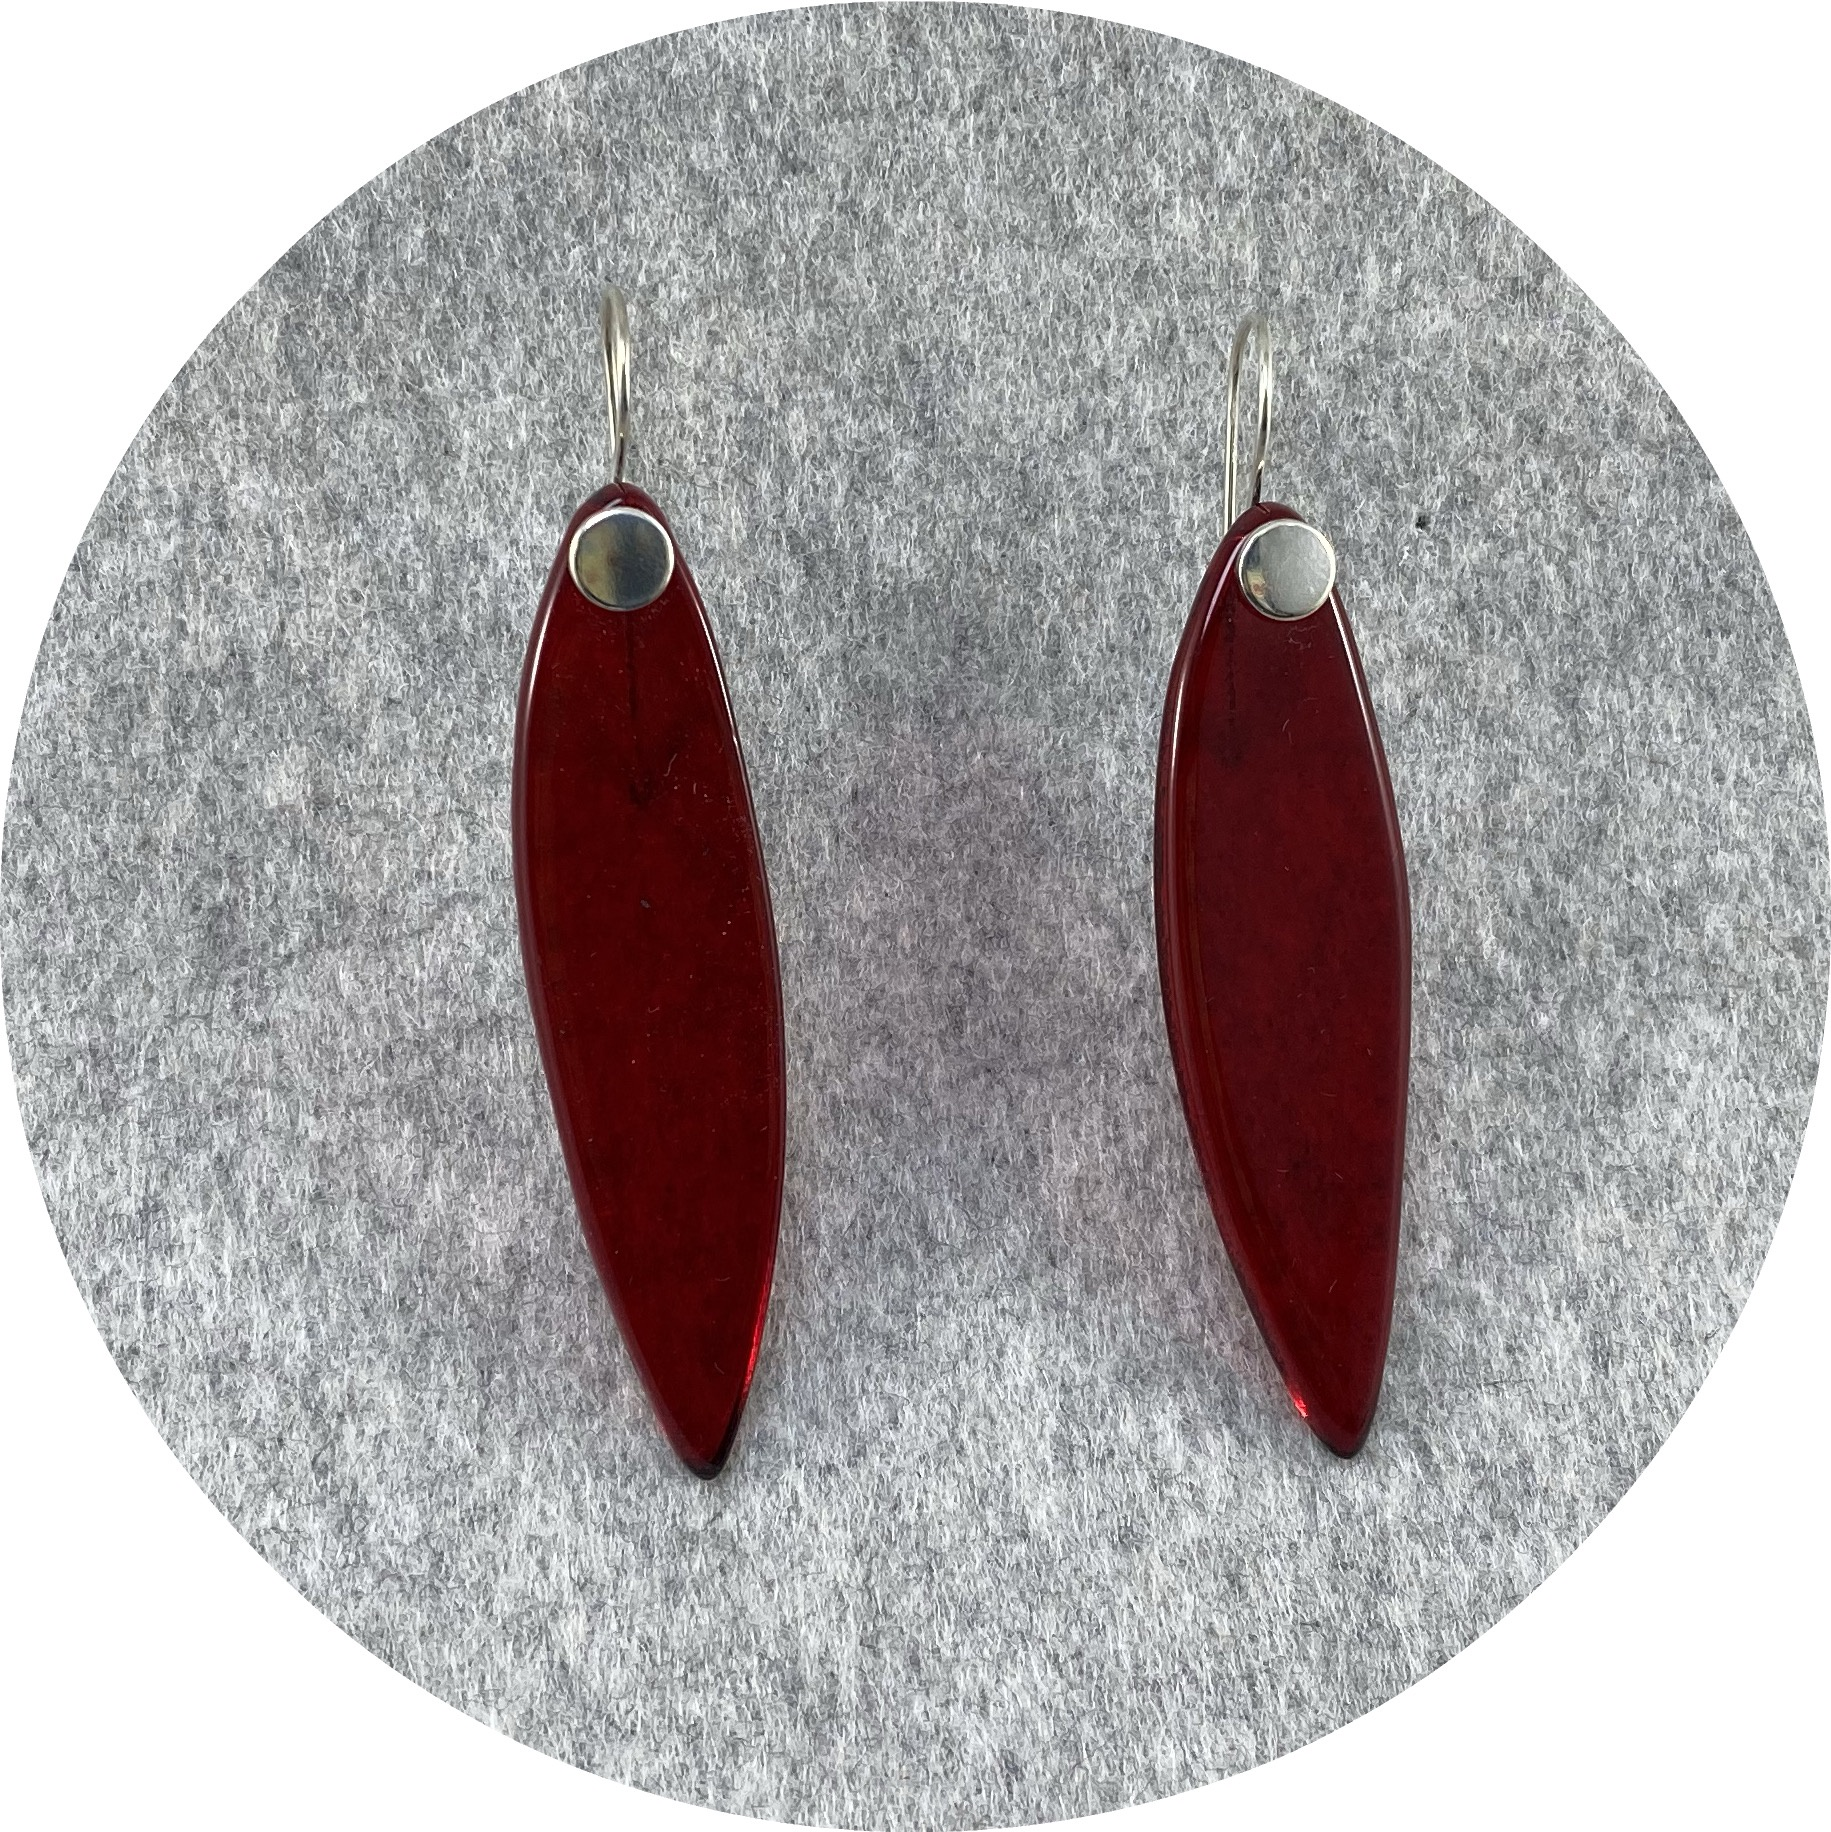 Alight Glass - Small Red Leaf Earrings, glass, sterling silver